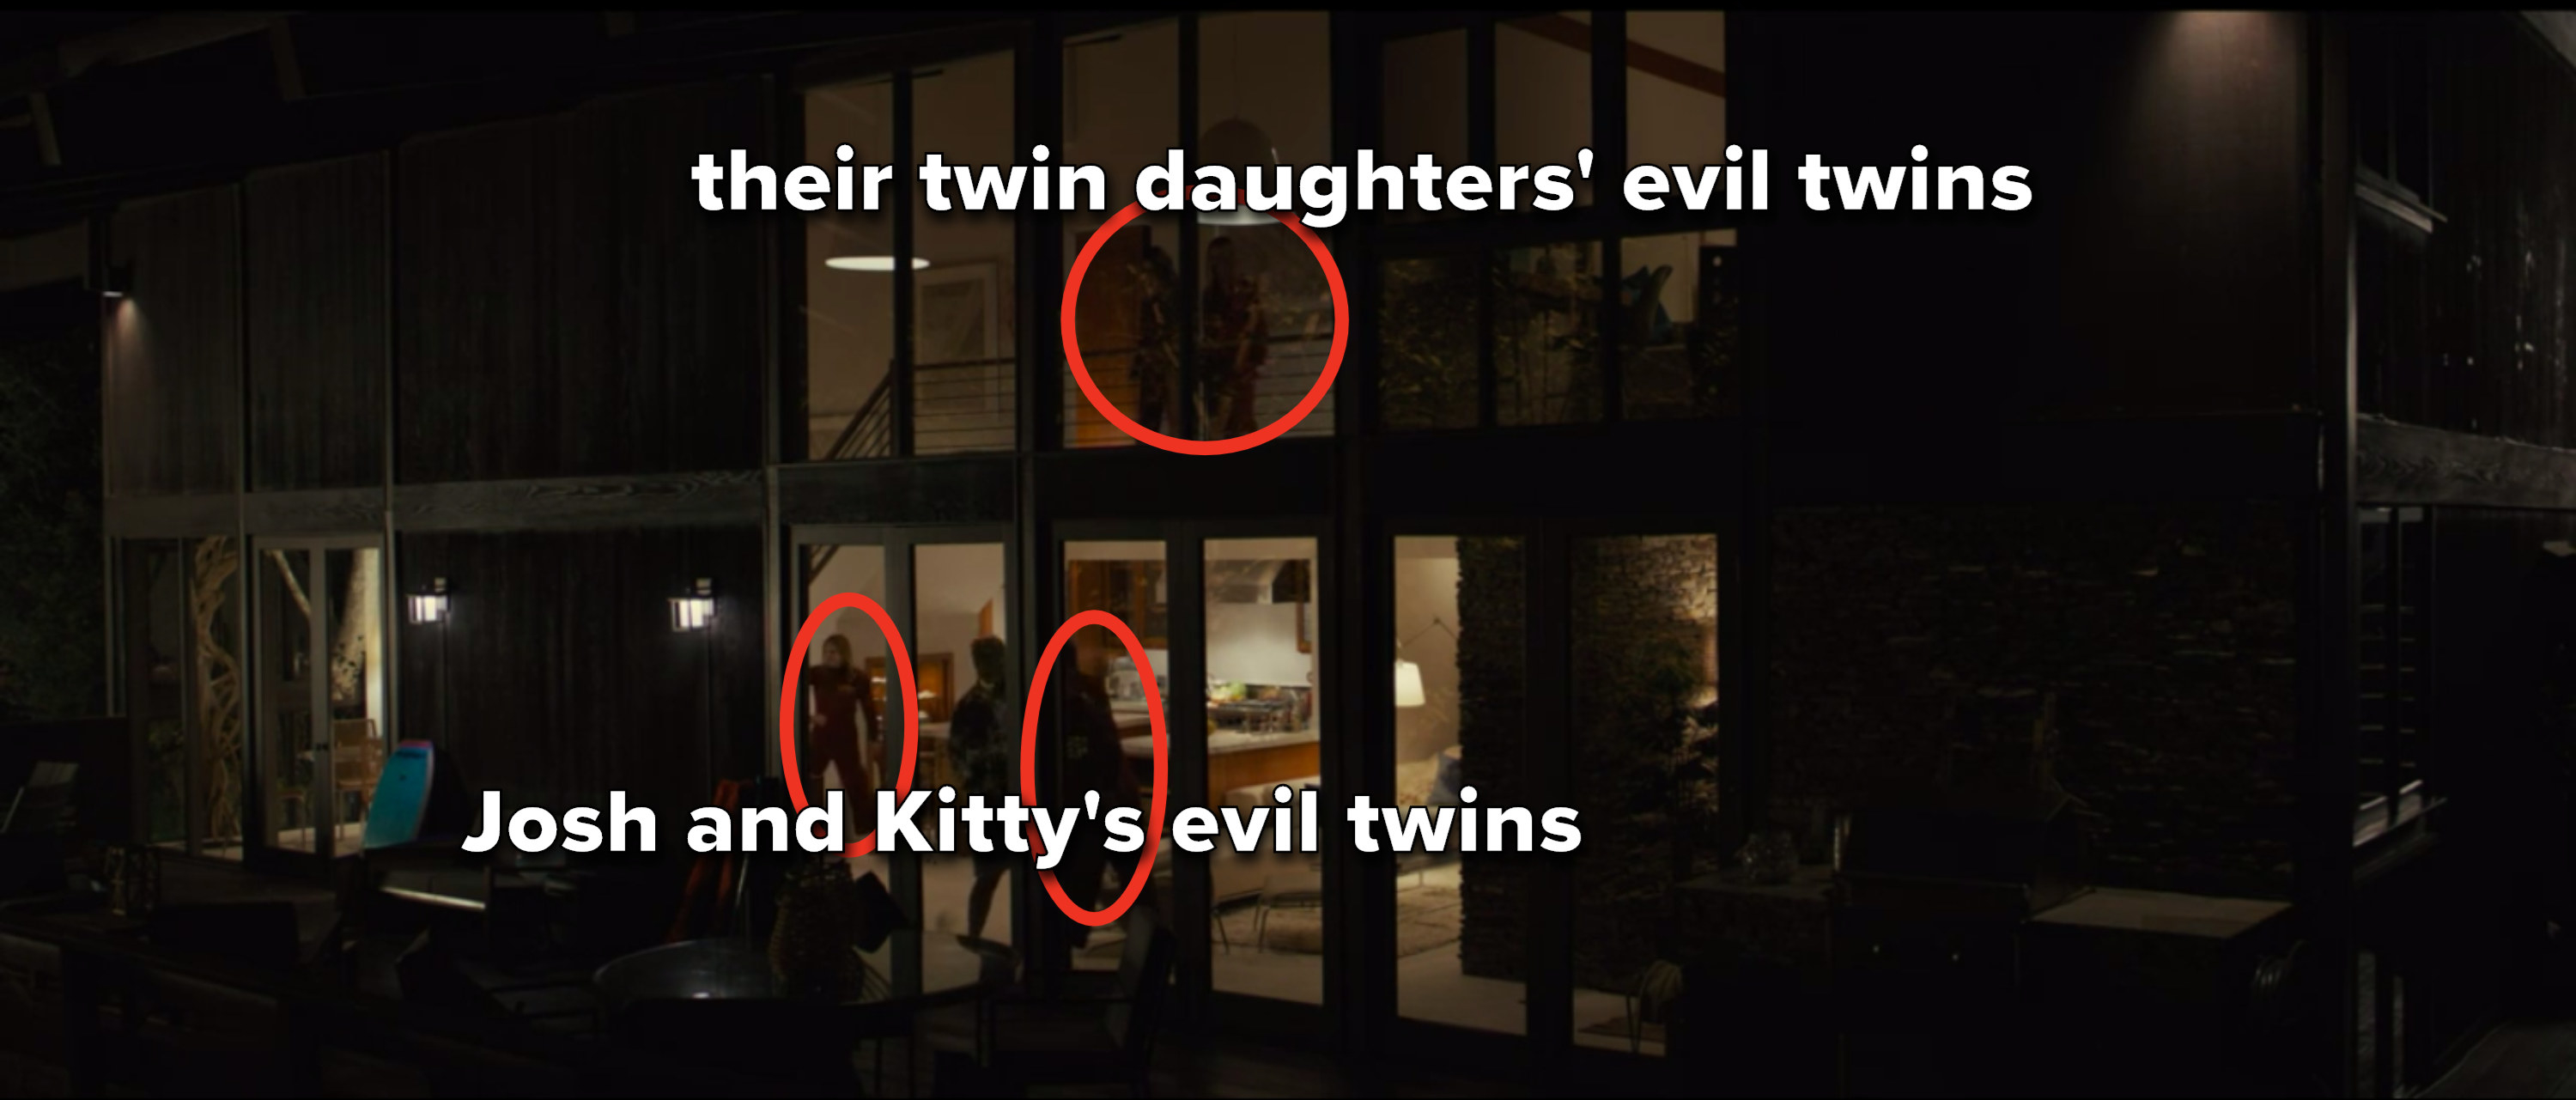 The evil twins of Josh, Kitty, and their twin daughters come into their house to attack them